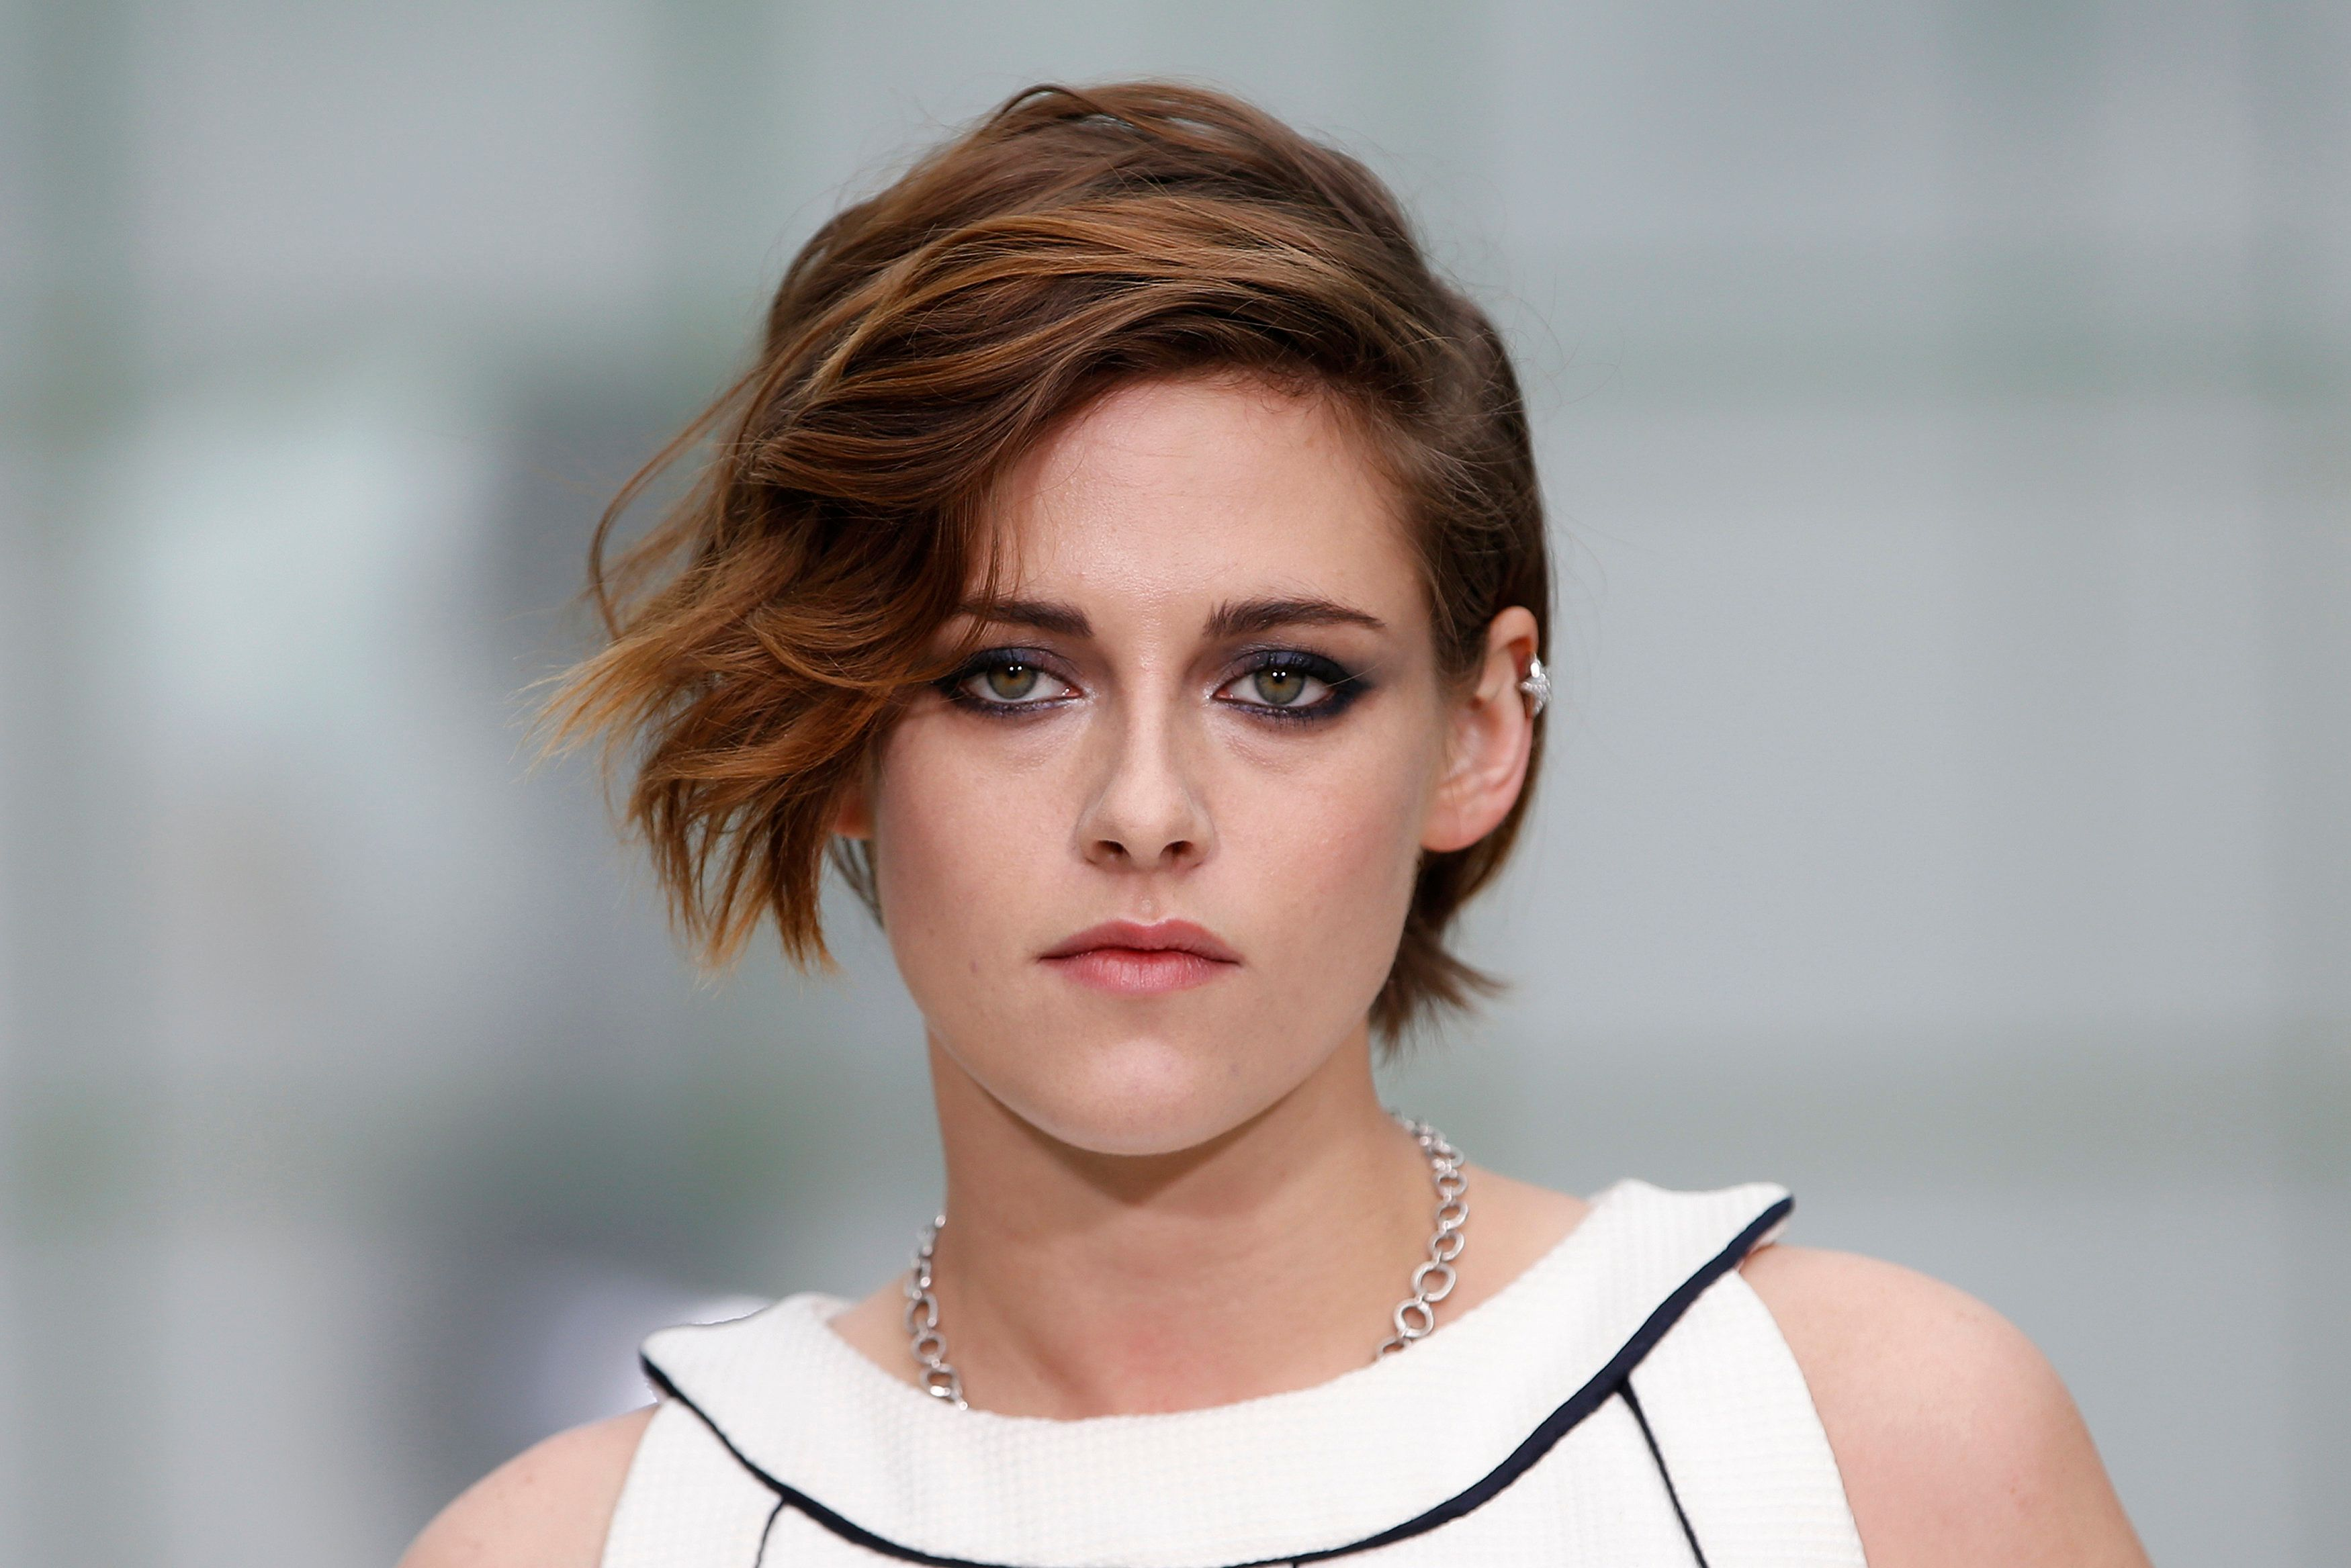 Actress Kristen Stewart poses before German designer Karl Lagerfeld Haute Couture Spring Summer 2015 fashion show for French fashion house Chanel in Paris January 27, 2015.    REUTERS/Charles Platiau (FRANCE  - Tags: FASHION ENTERTAINMENT HEADSHOT)